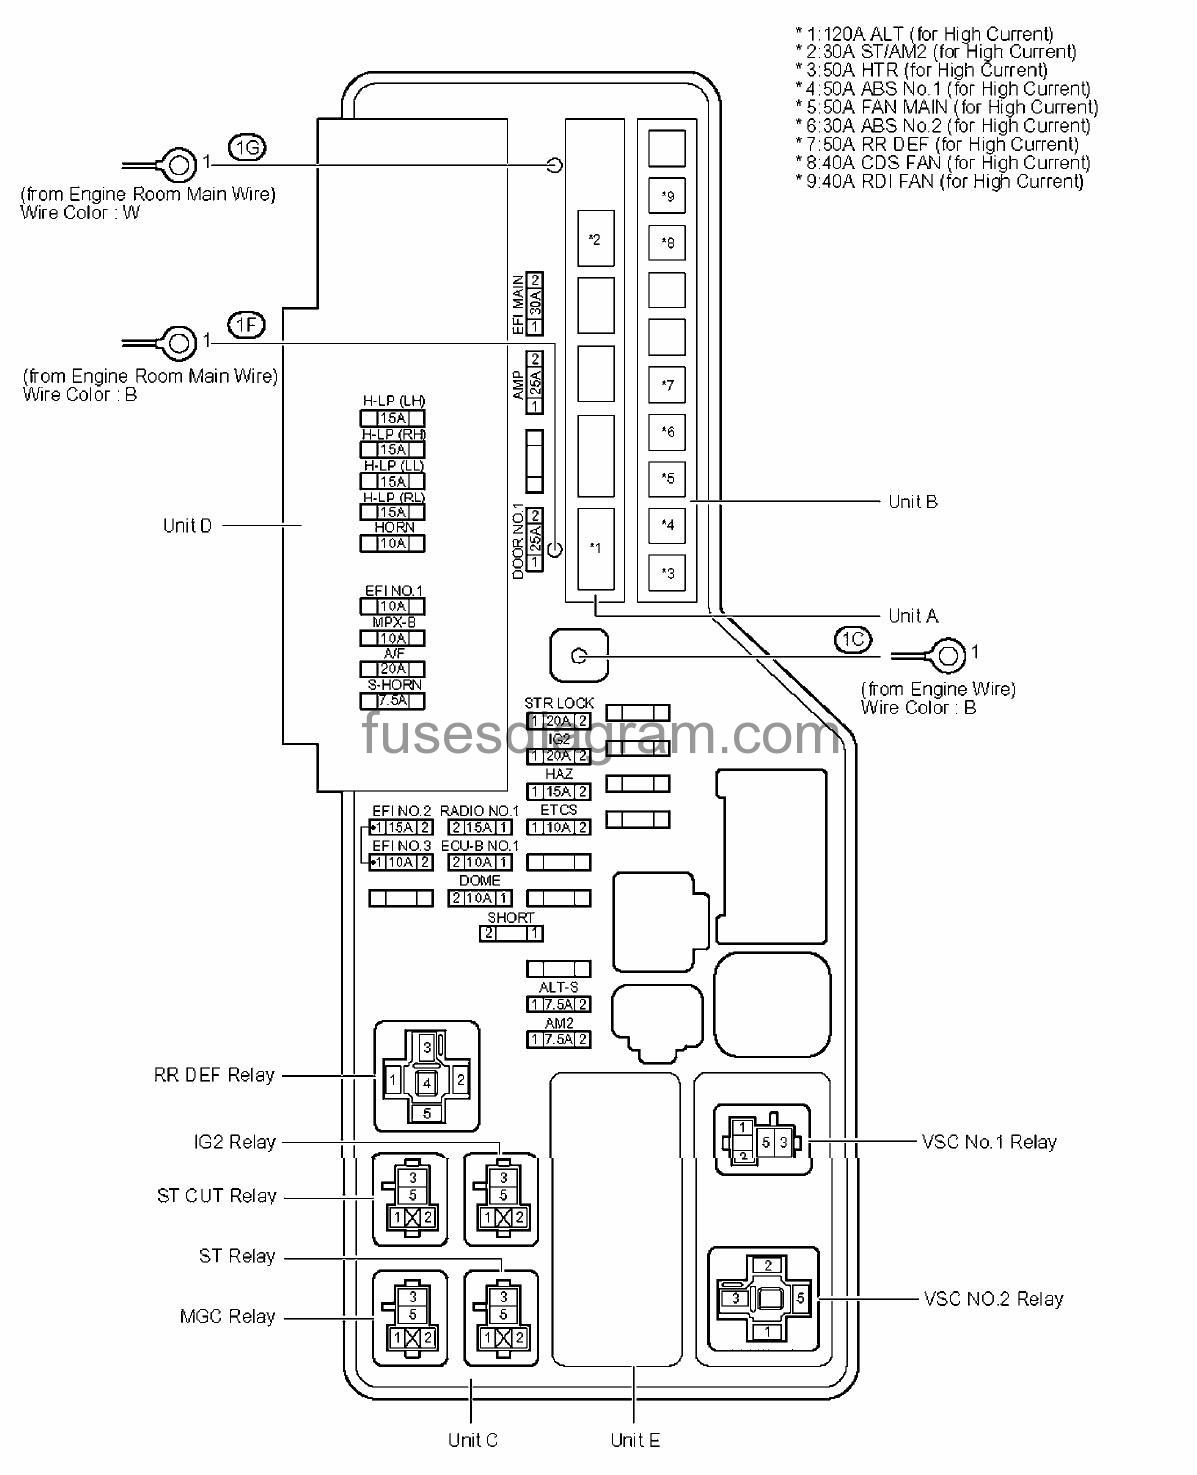 2000 Toyota Camry Fuse Box Wiring Diagram Data Mitsubishi Eclipse 2007 Simple 2011 Tacoma